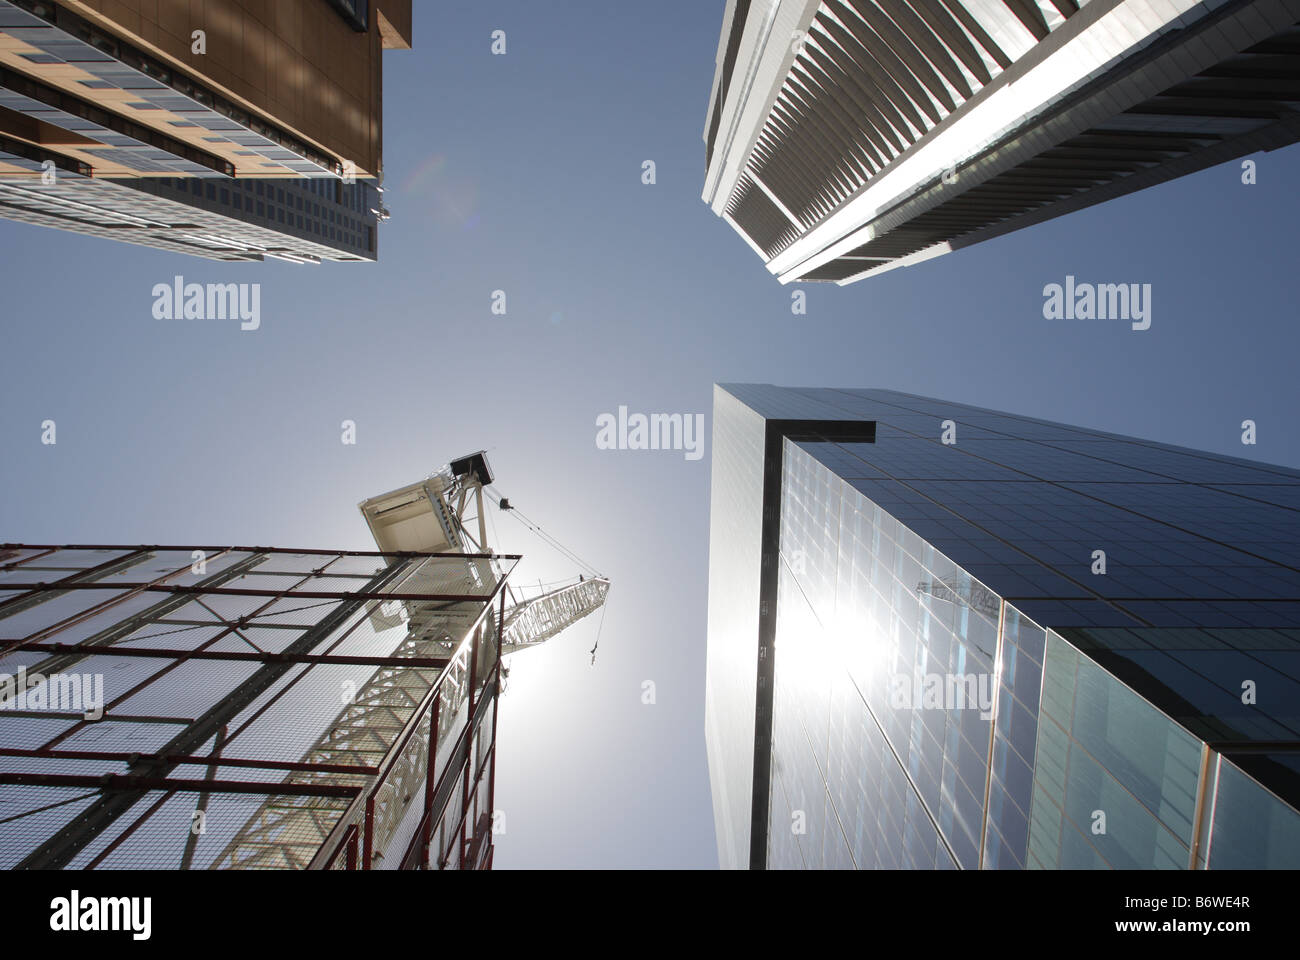 Worm's eye view of crane and skyscrapers - Stock Image